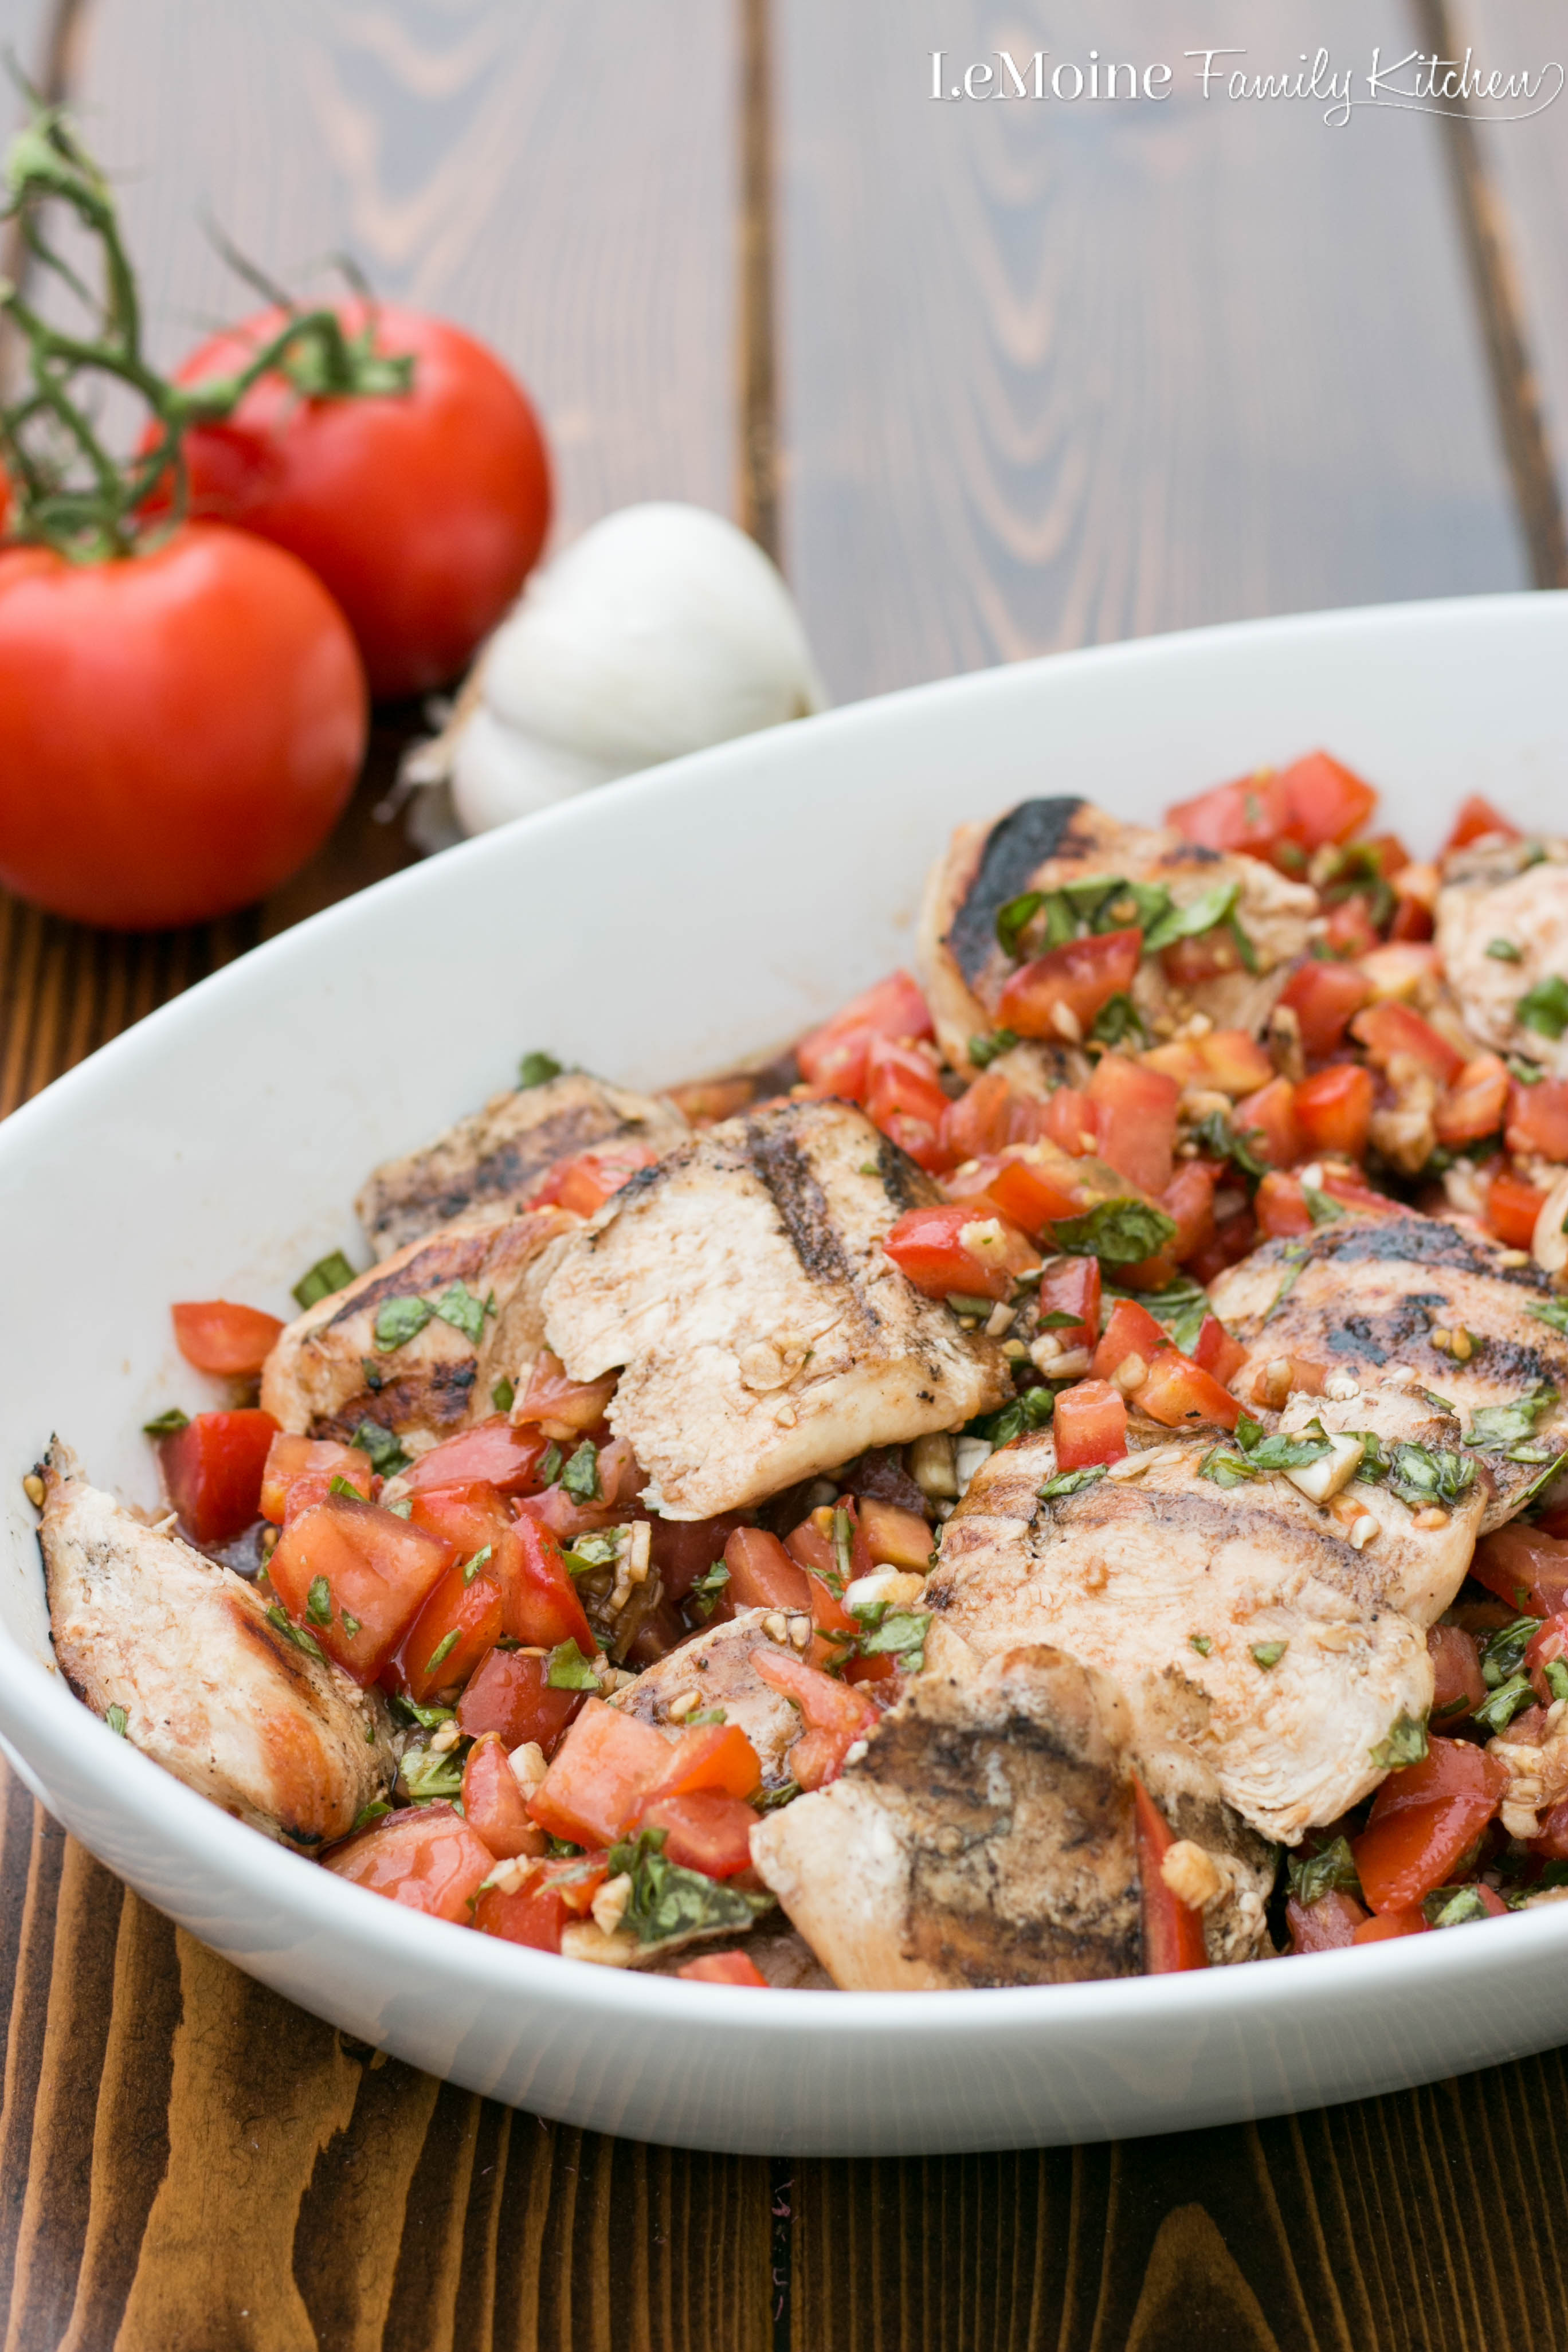 Bruschetta Grilled Chicken. A perfect  summer meal. Simple to make, healthy and bright fresh flavor. Grilled chicken topped with juicy sweet tomatoes, lots of fresh basil, some garlic, olive oil and a drizzle of balsamic vinegar.